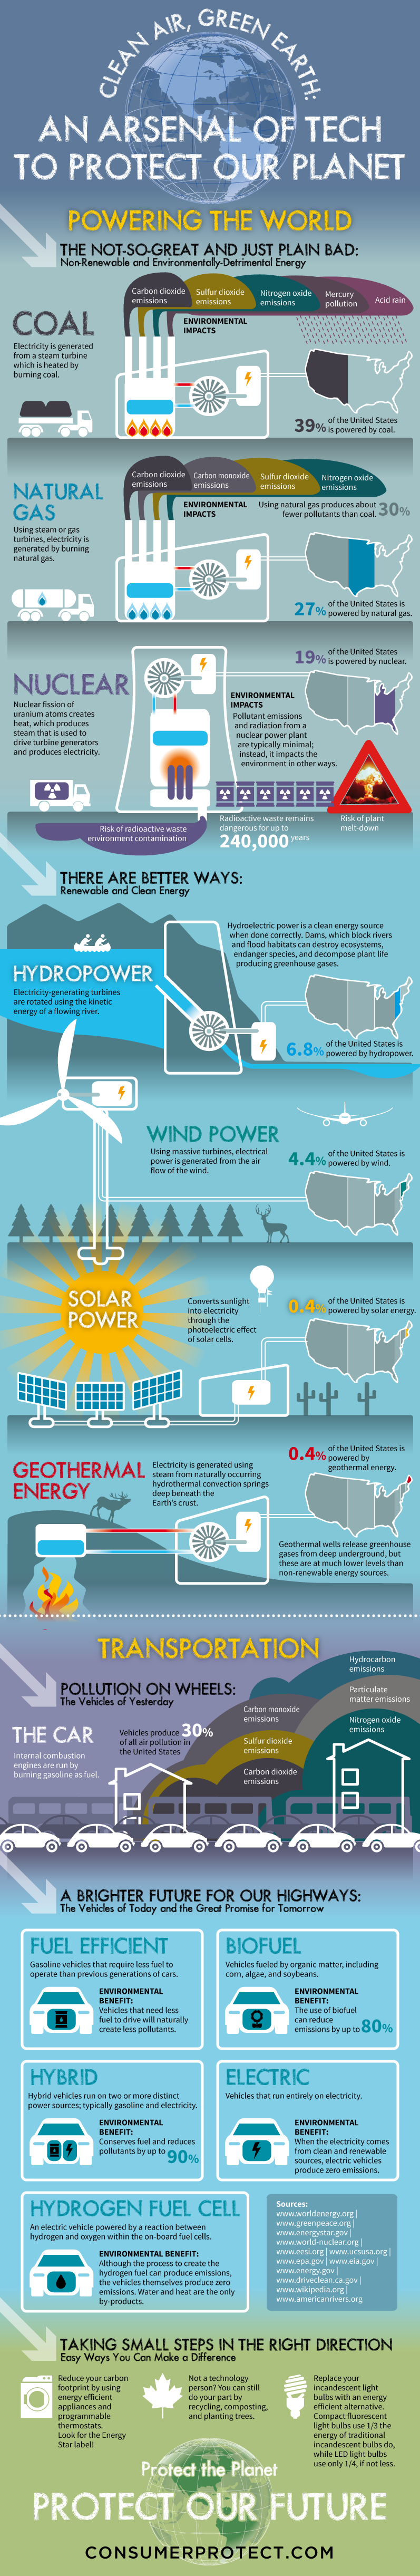 Clean Air, Green Earth: An Arsenal of Tech to Protect Our Planet #infographic